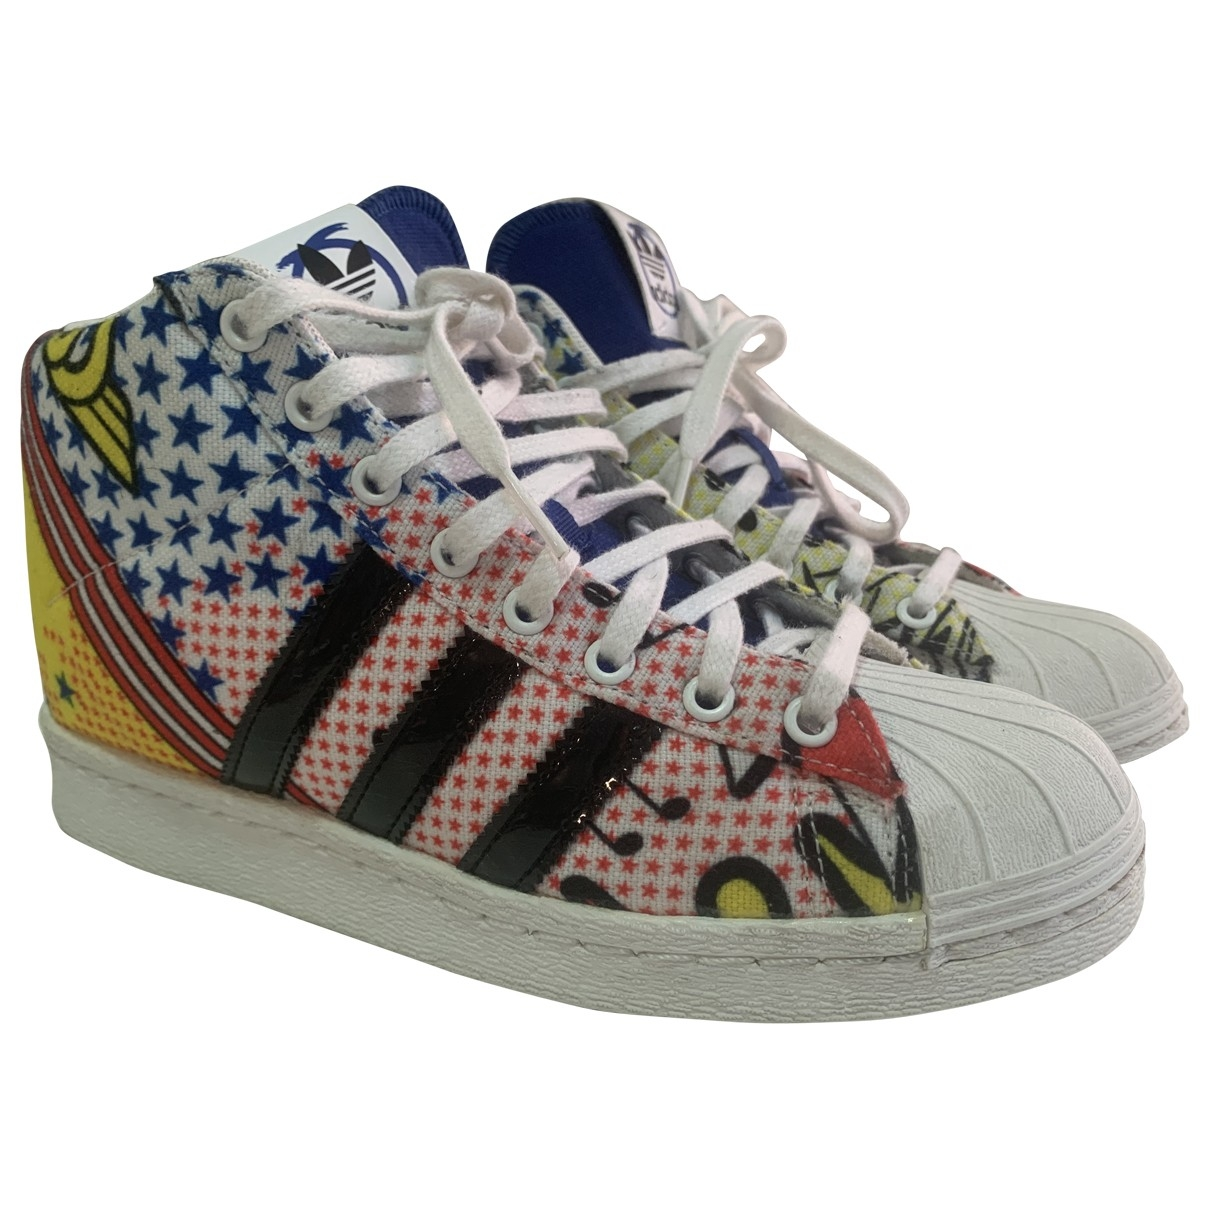 Adidas - Baskets Superstar pour femme en toile - multicolore